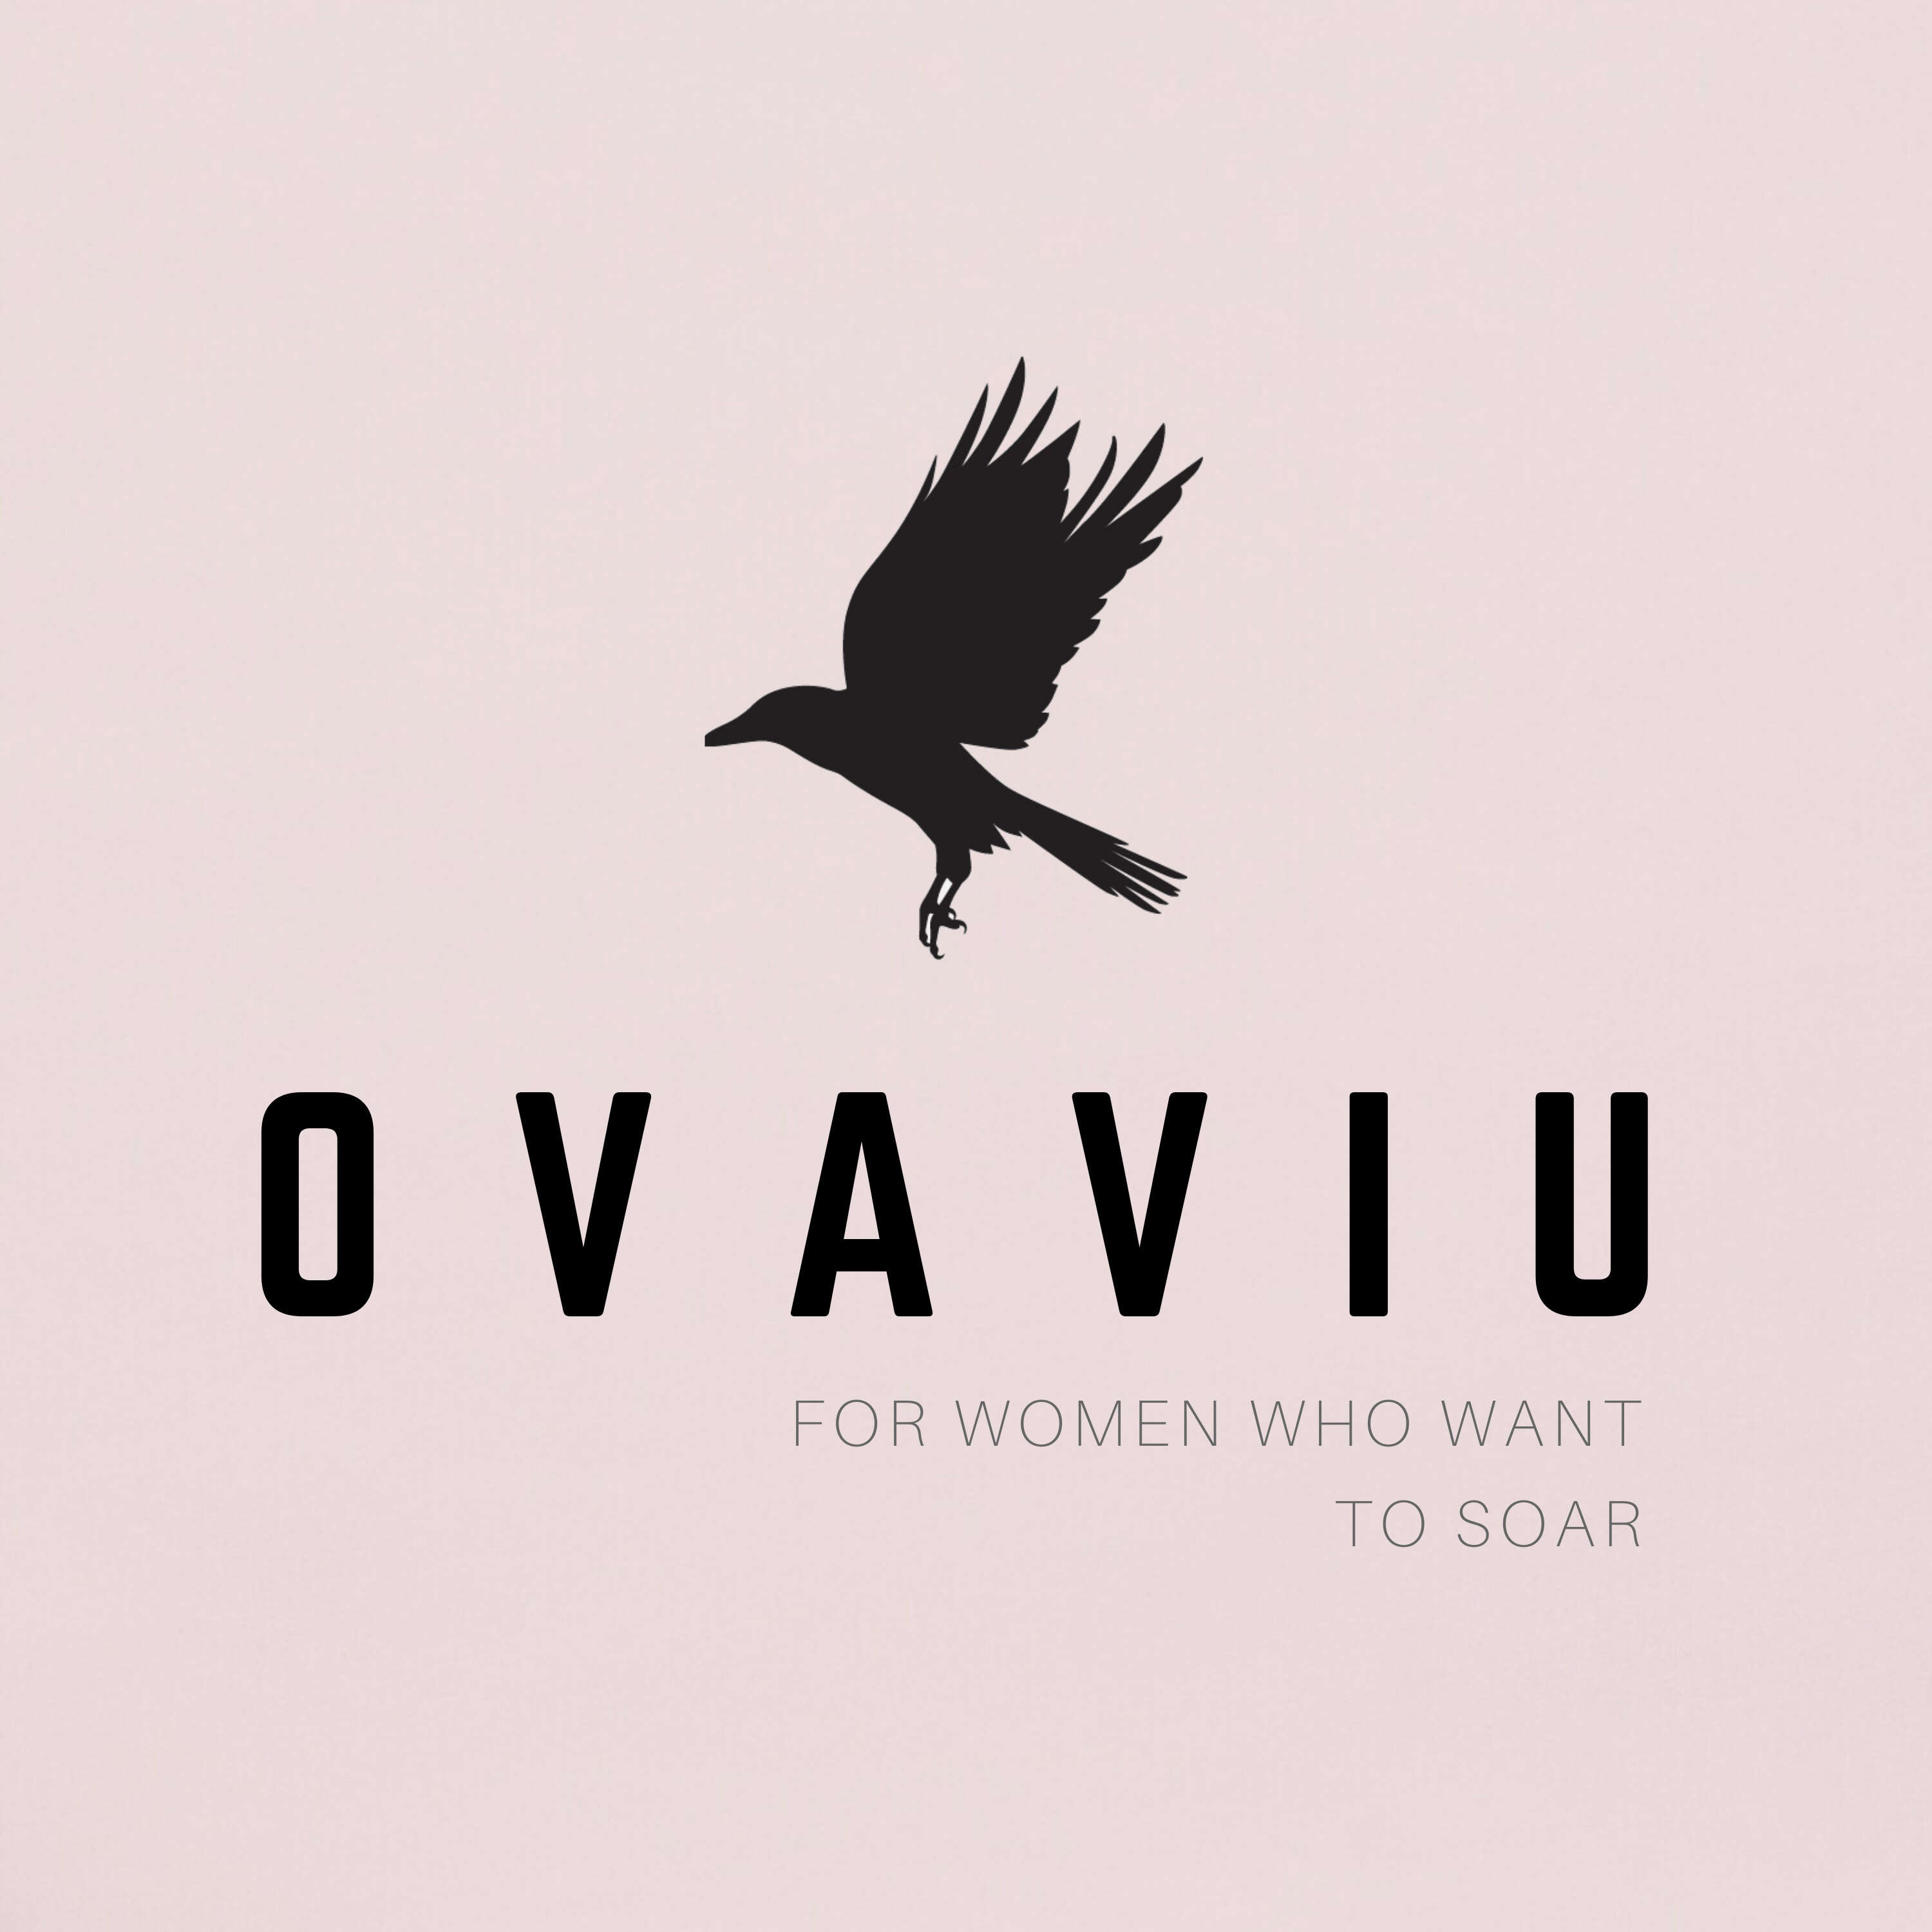 OvaViu – For Women Who Want To Soar